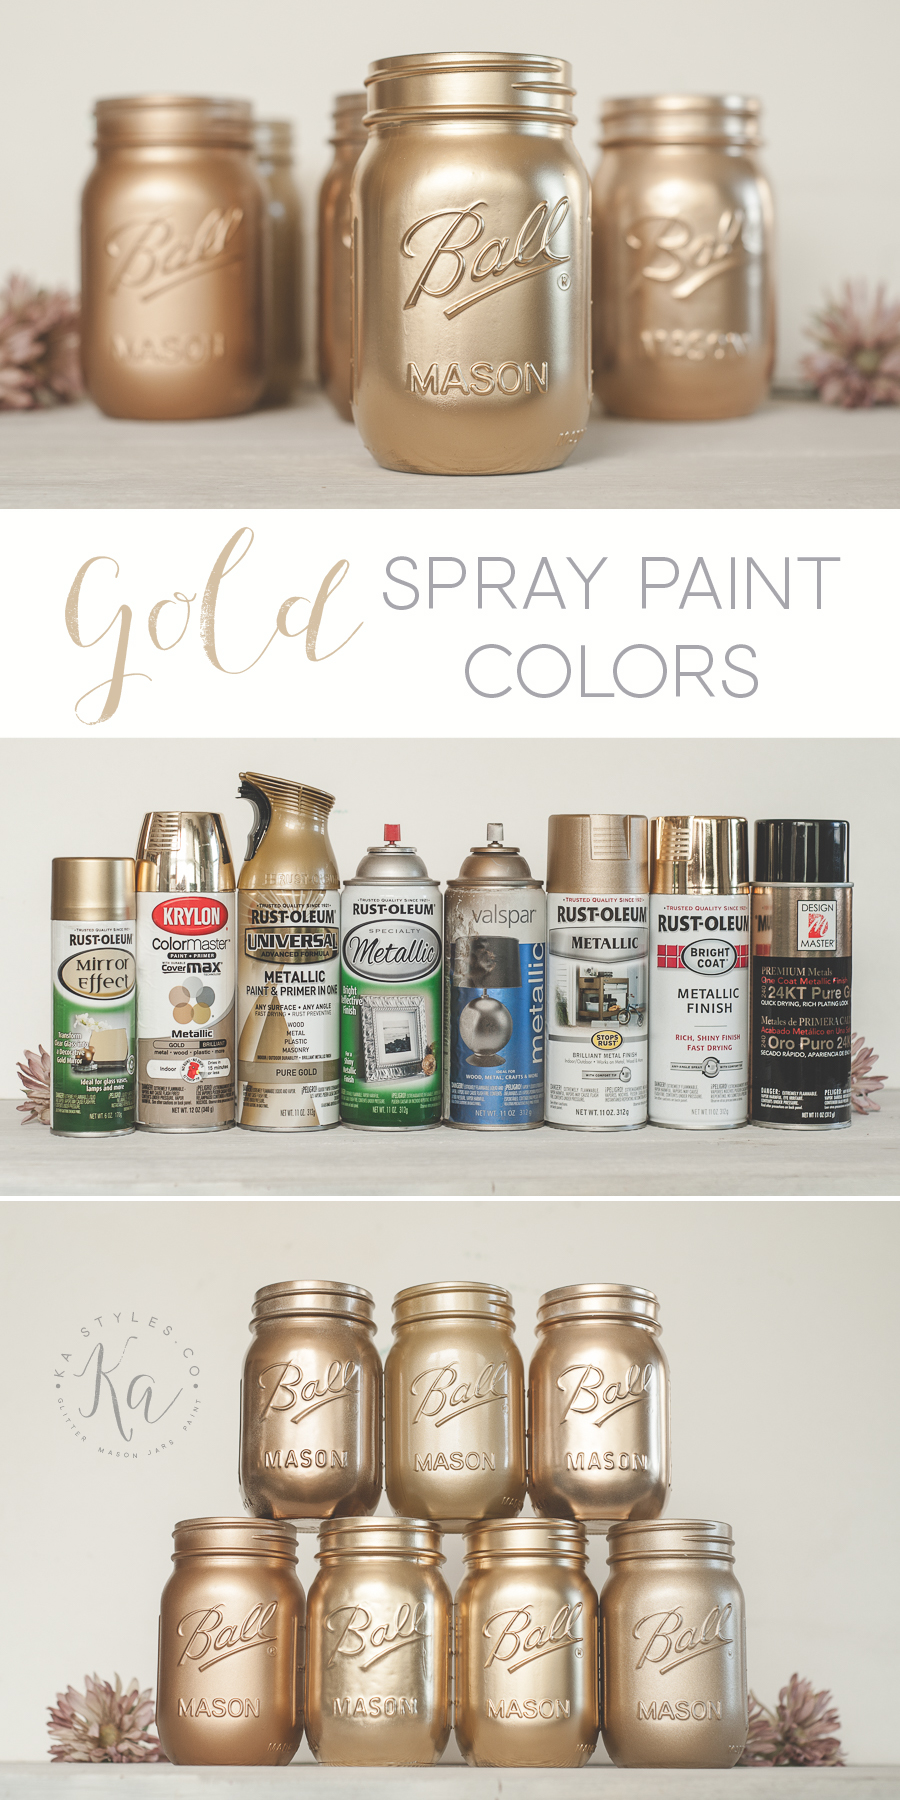 Rustoleum Spray Paint Colors For Metal Part - 23: Best Gold Spray Paint Colors. Rust-oleum, Krylon, Design Master.